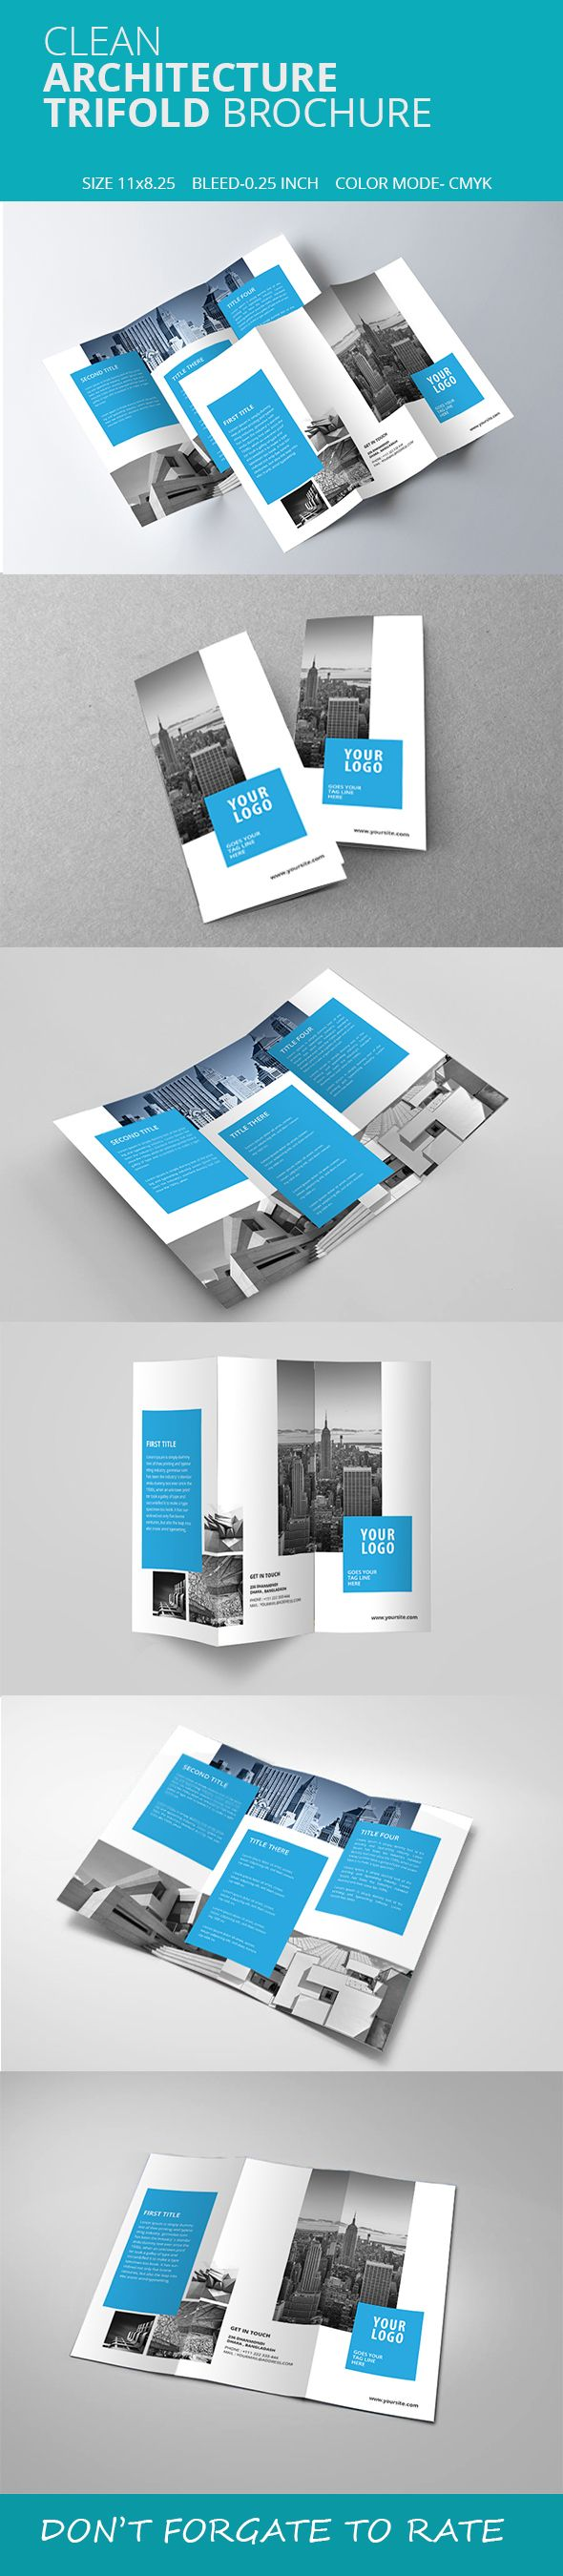 Clean Architecture Trifold Brochure on Behance